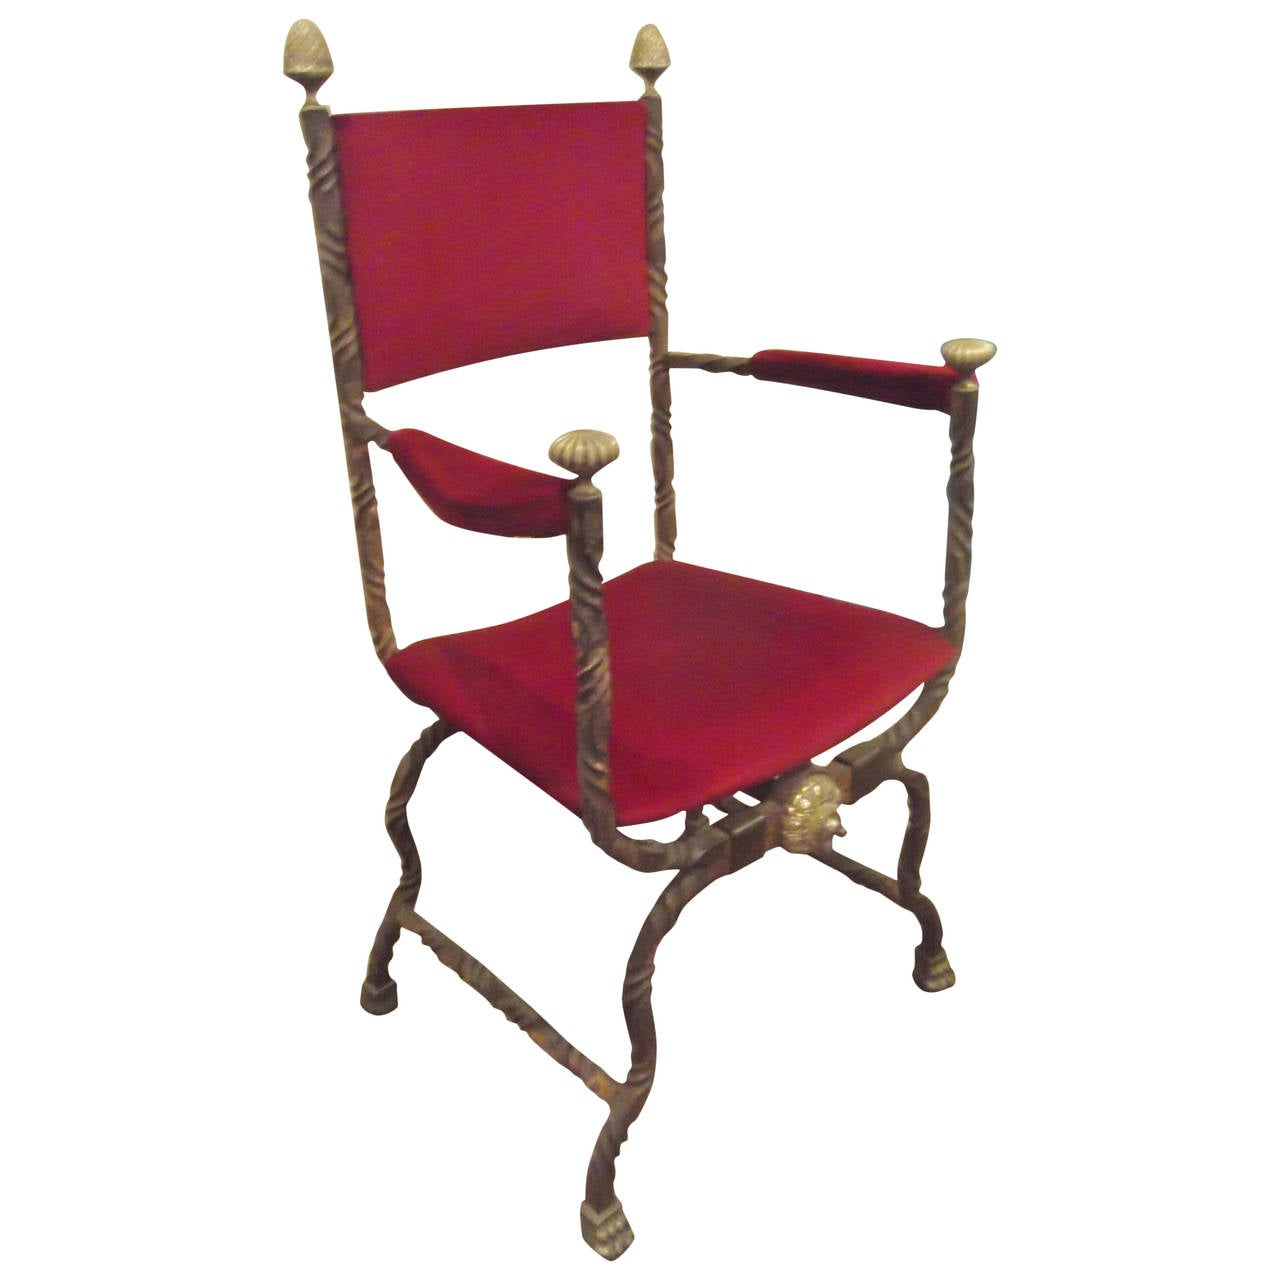 Hand Chairs Hand Wrought Iron And Cast Brass Savonarola Chair At 1stdibs